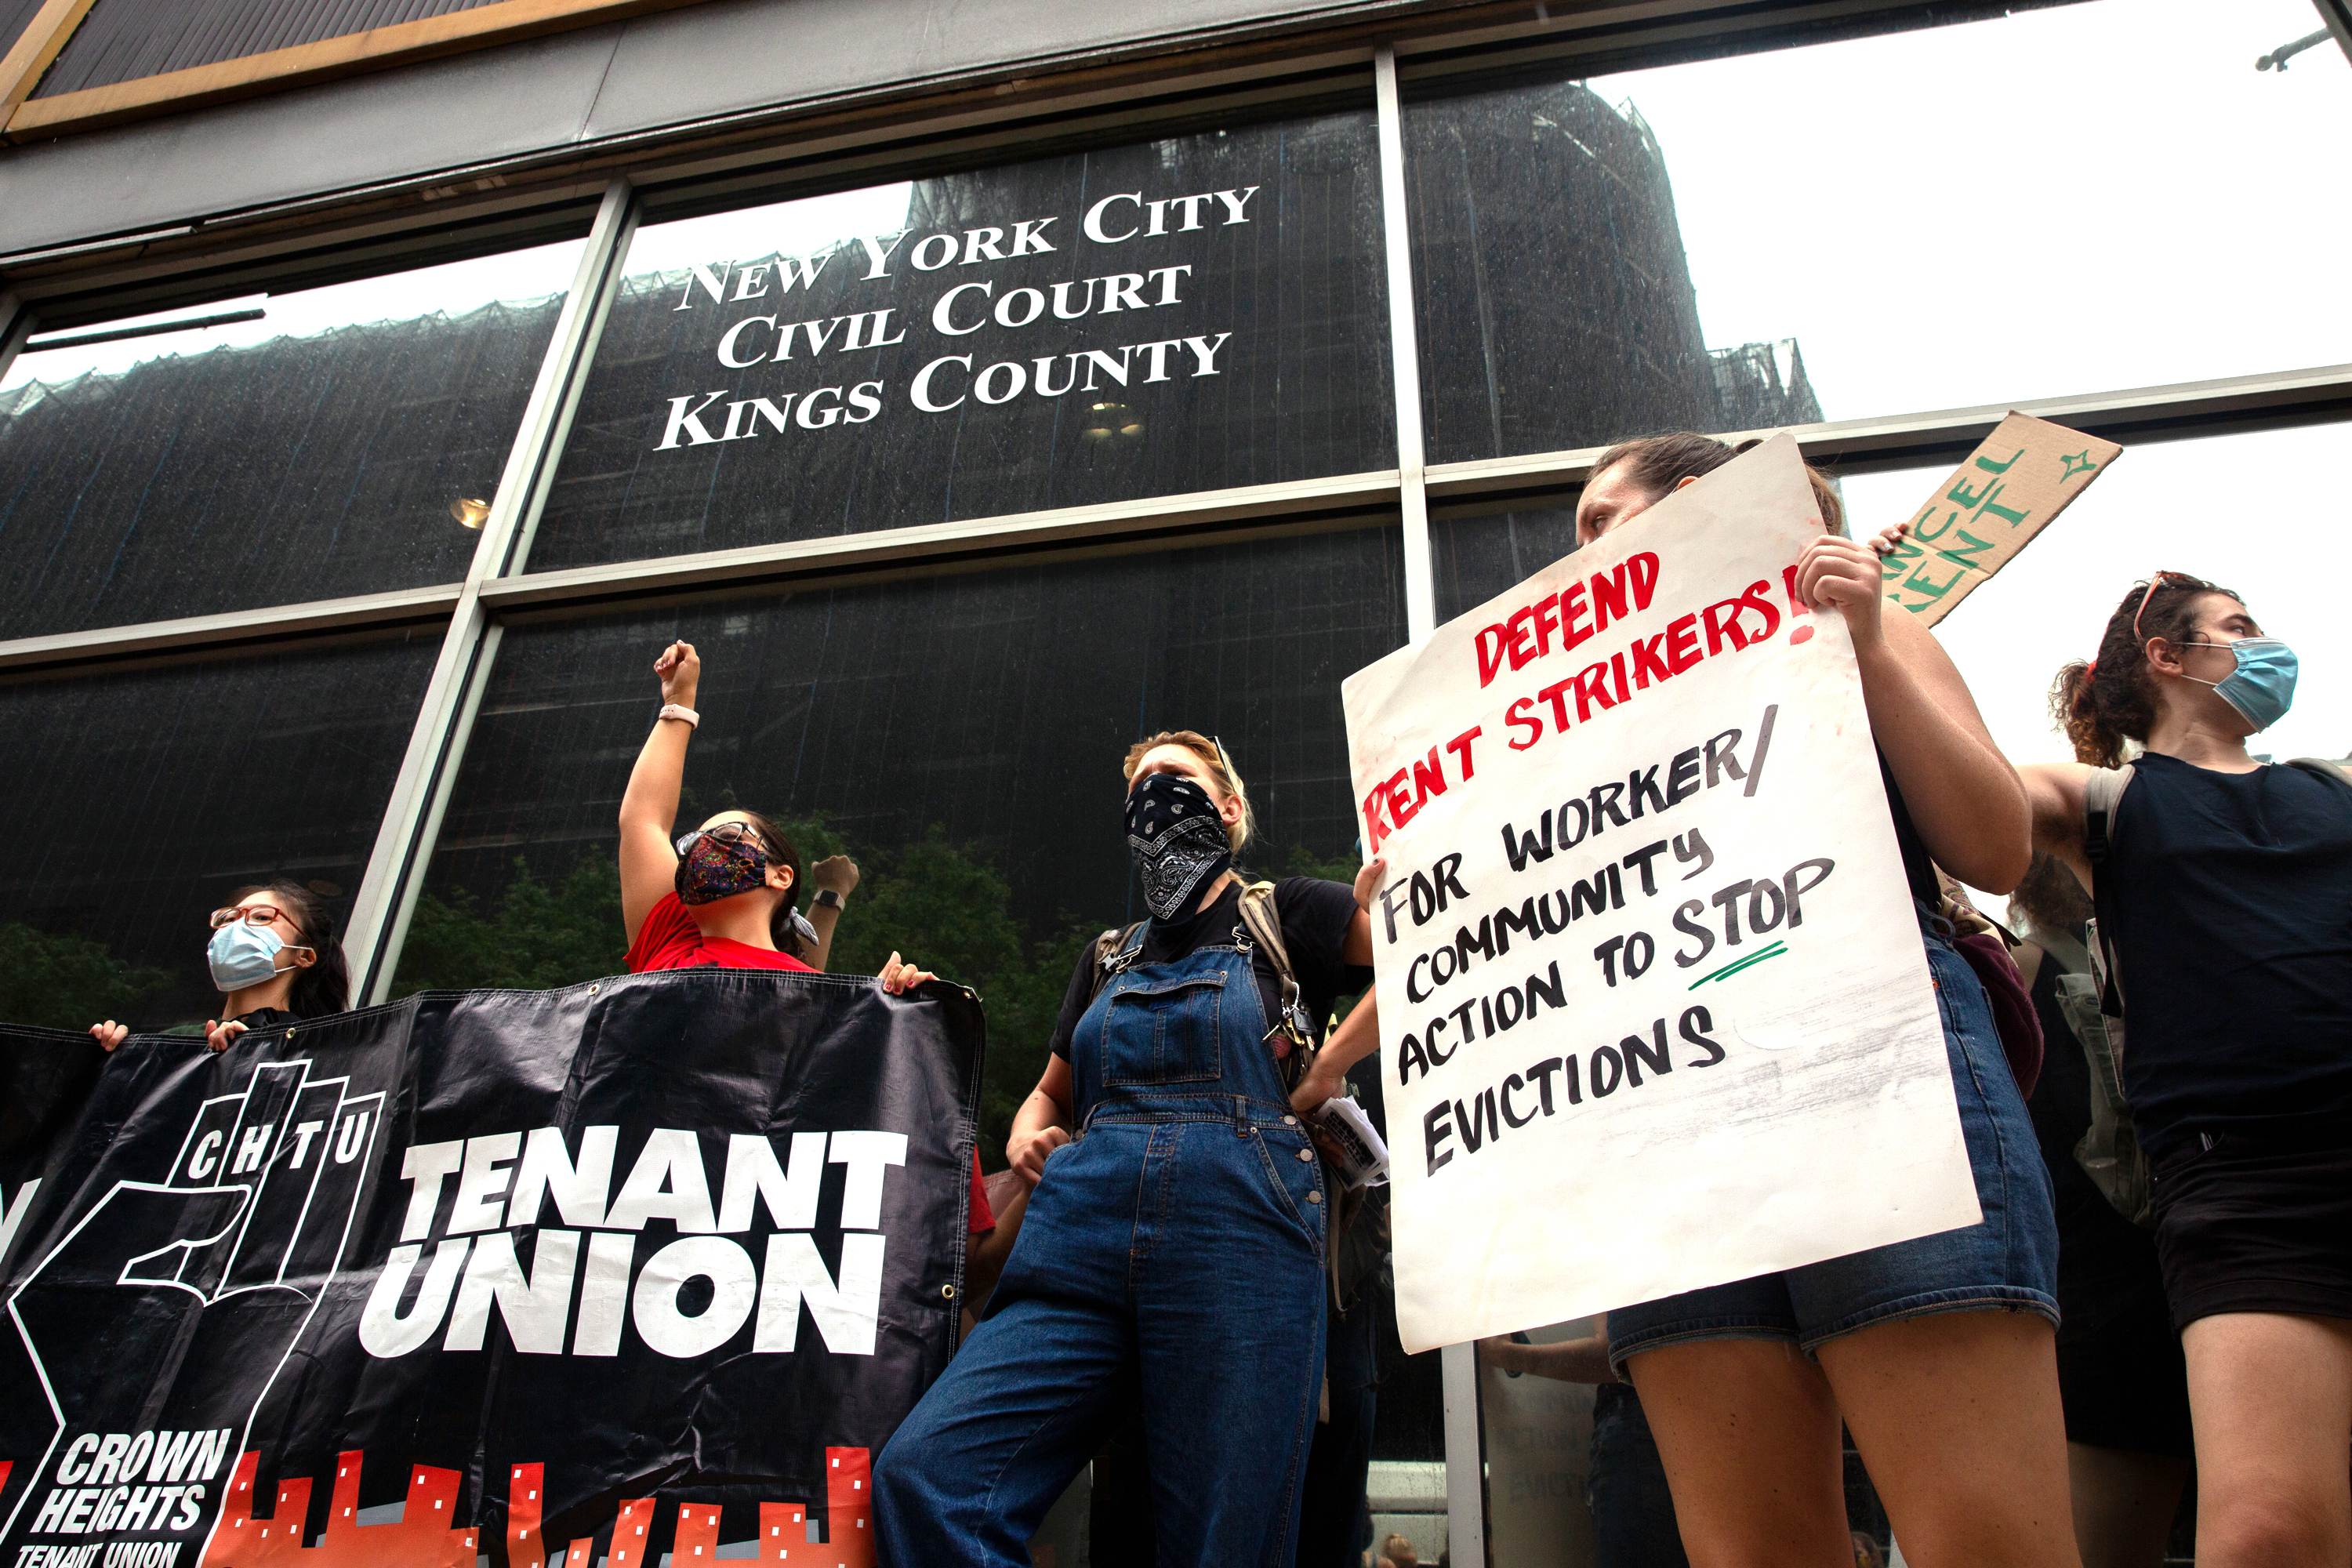 Protesters decry looming eviction proceedings at Brooklyn housing court, Aug. 6, 2020.